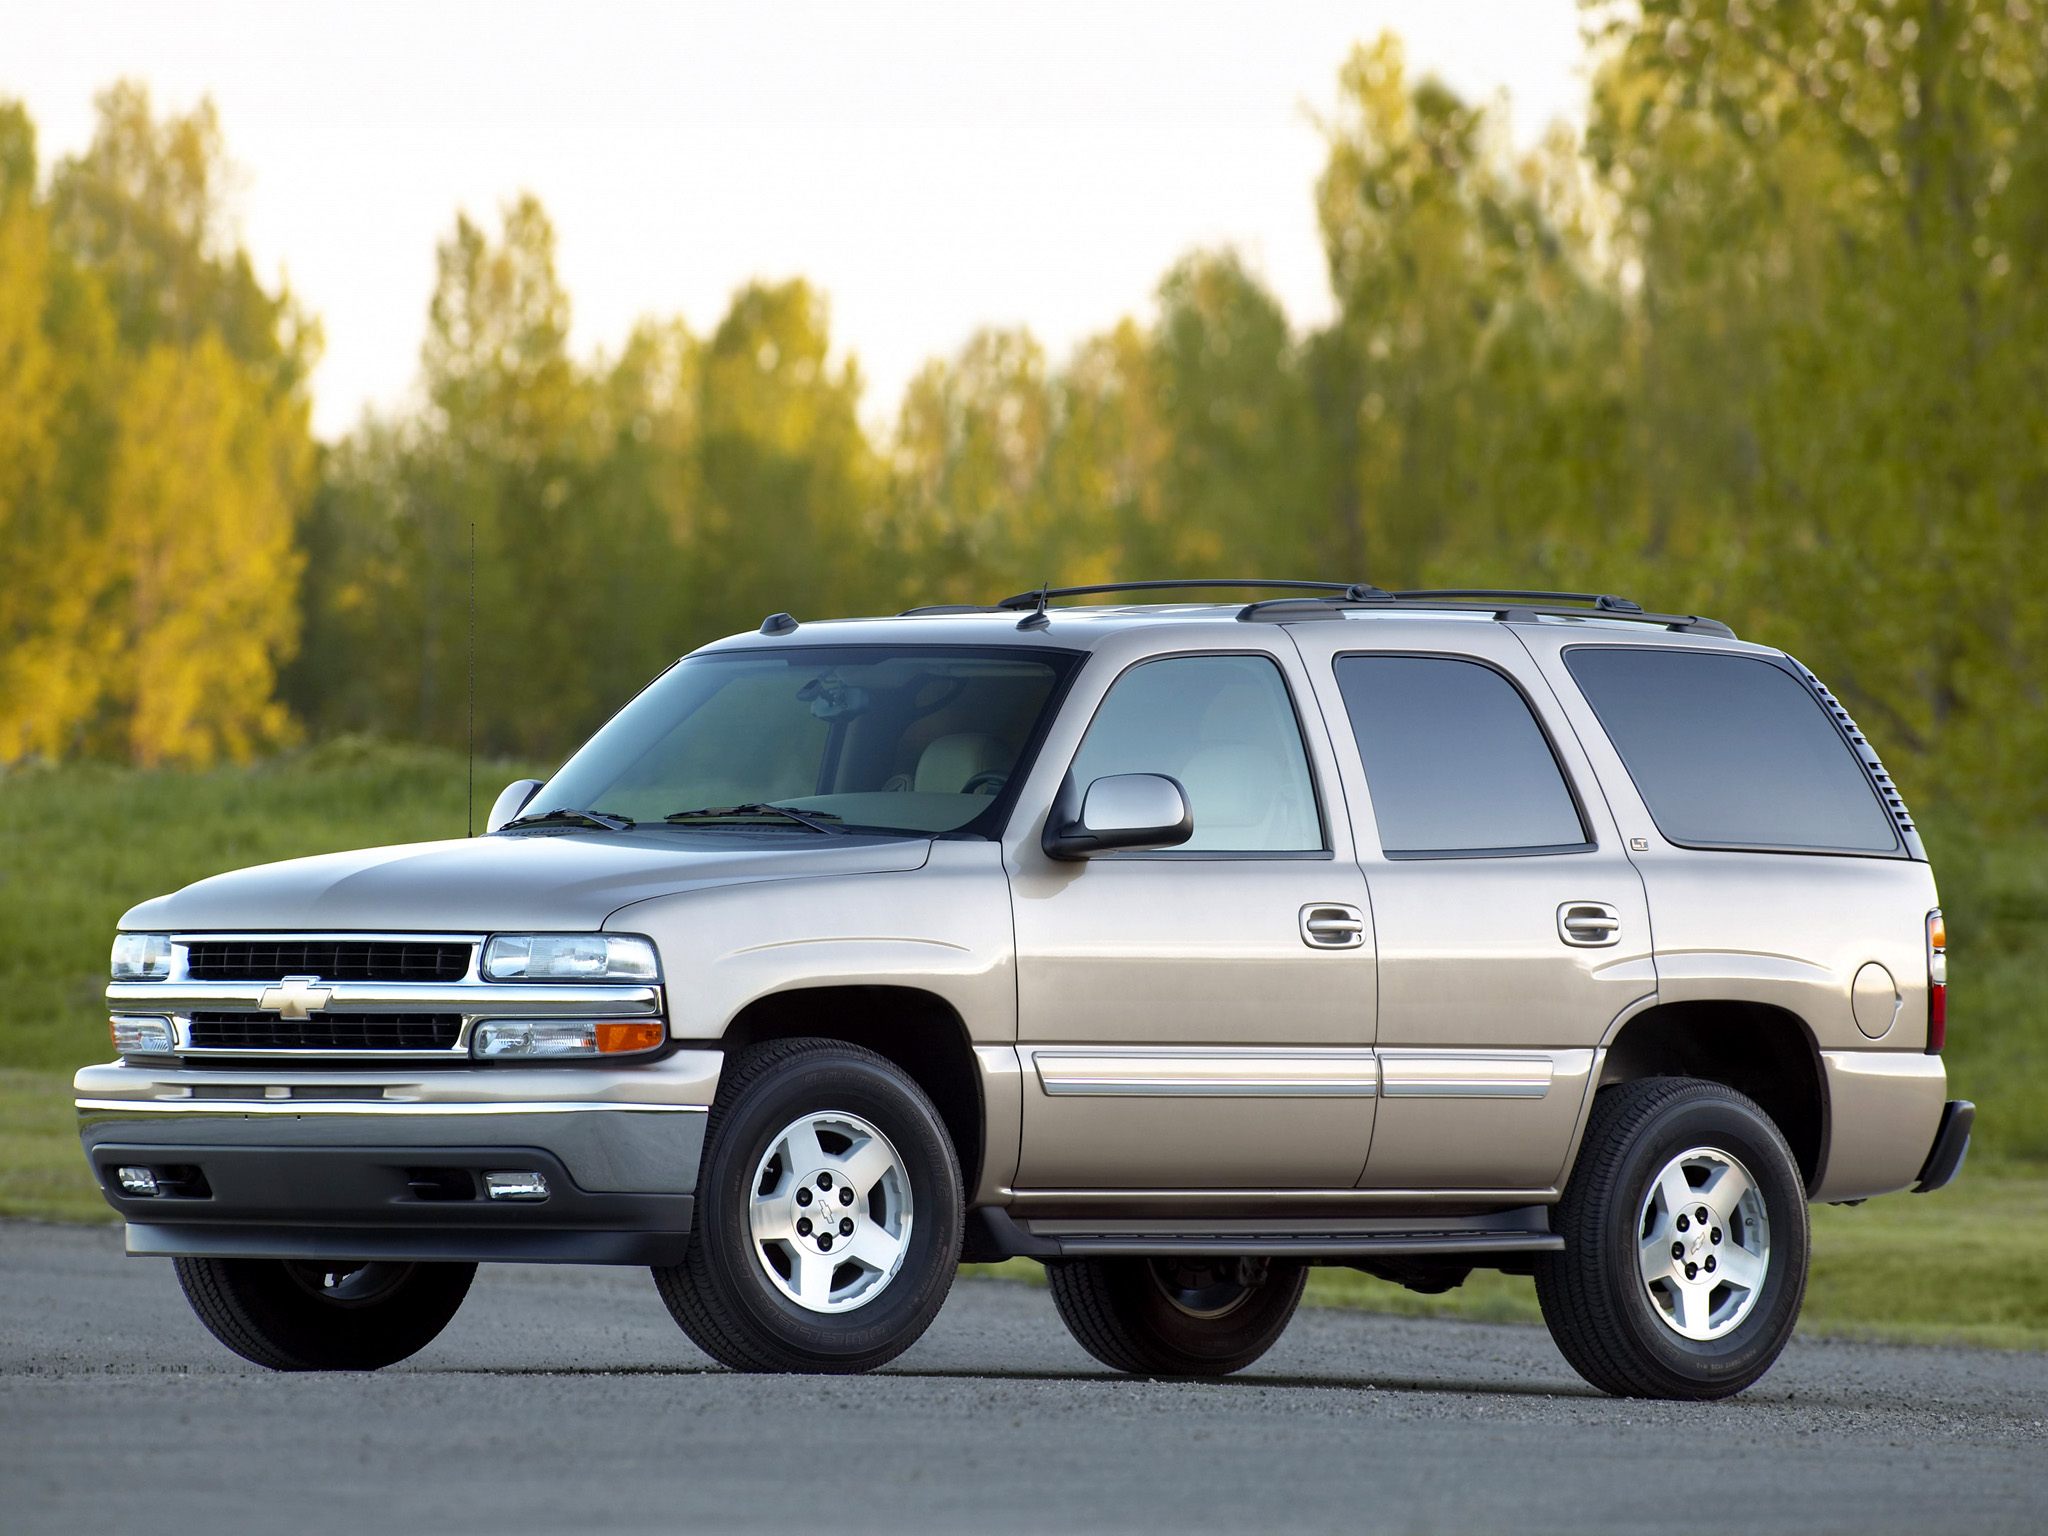 chevrolet tahoe (gmt840) 2006 models #5